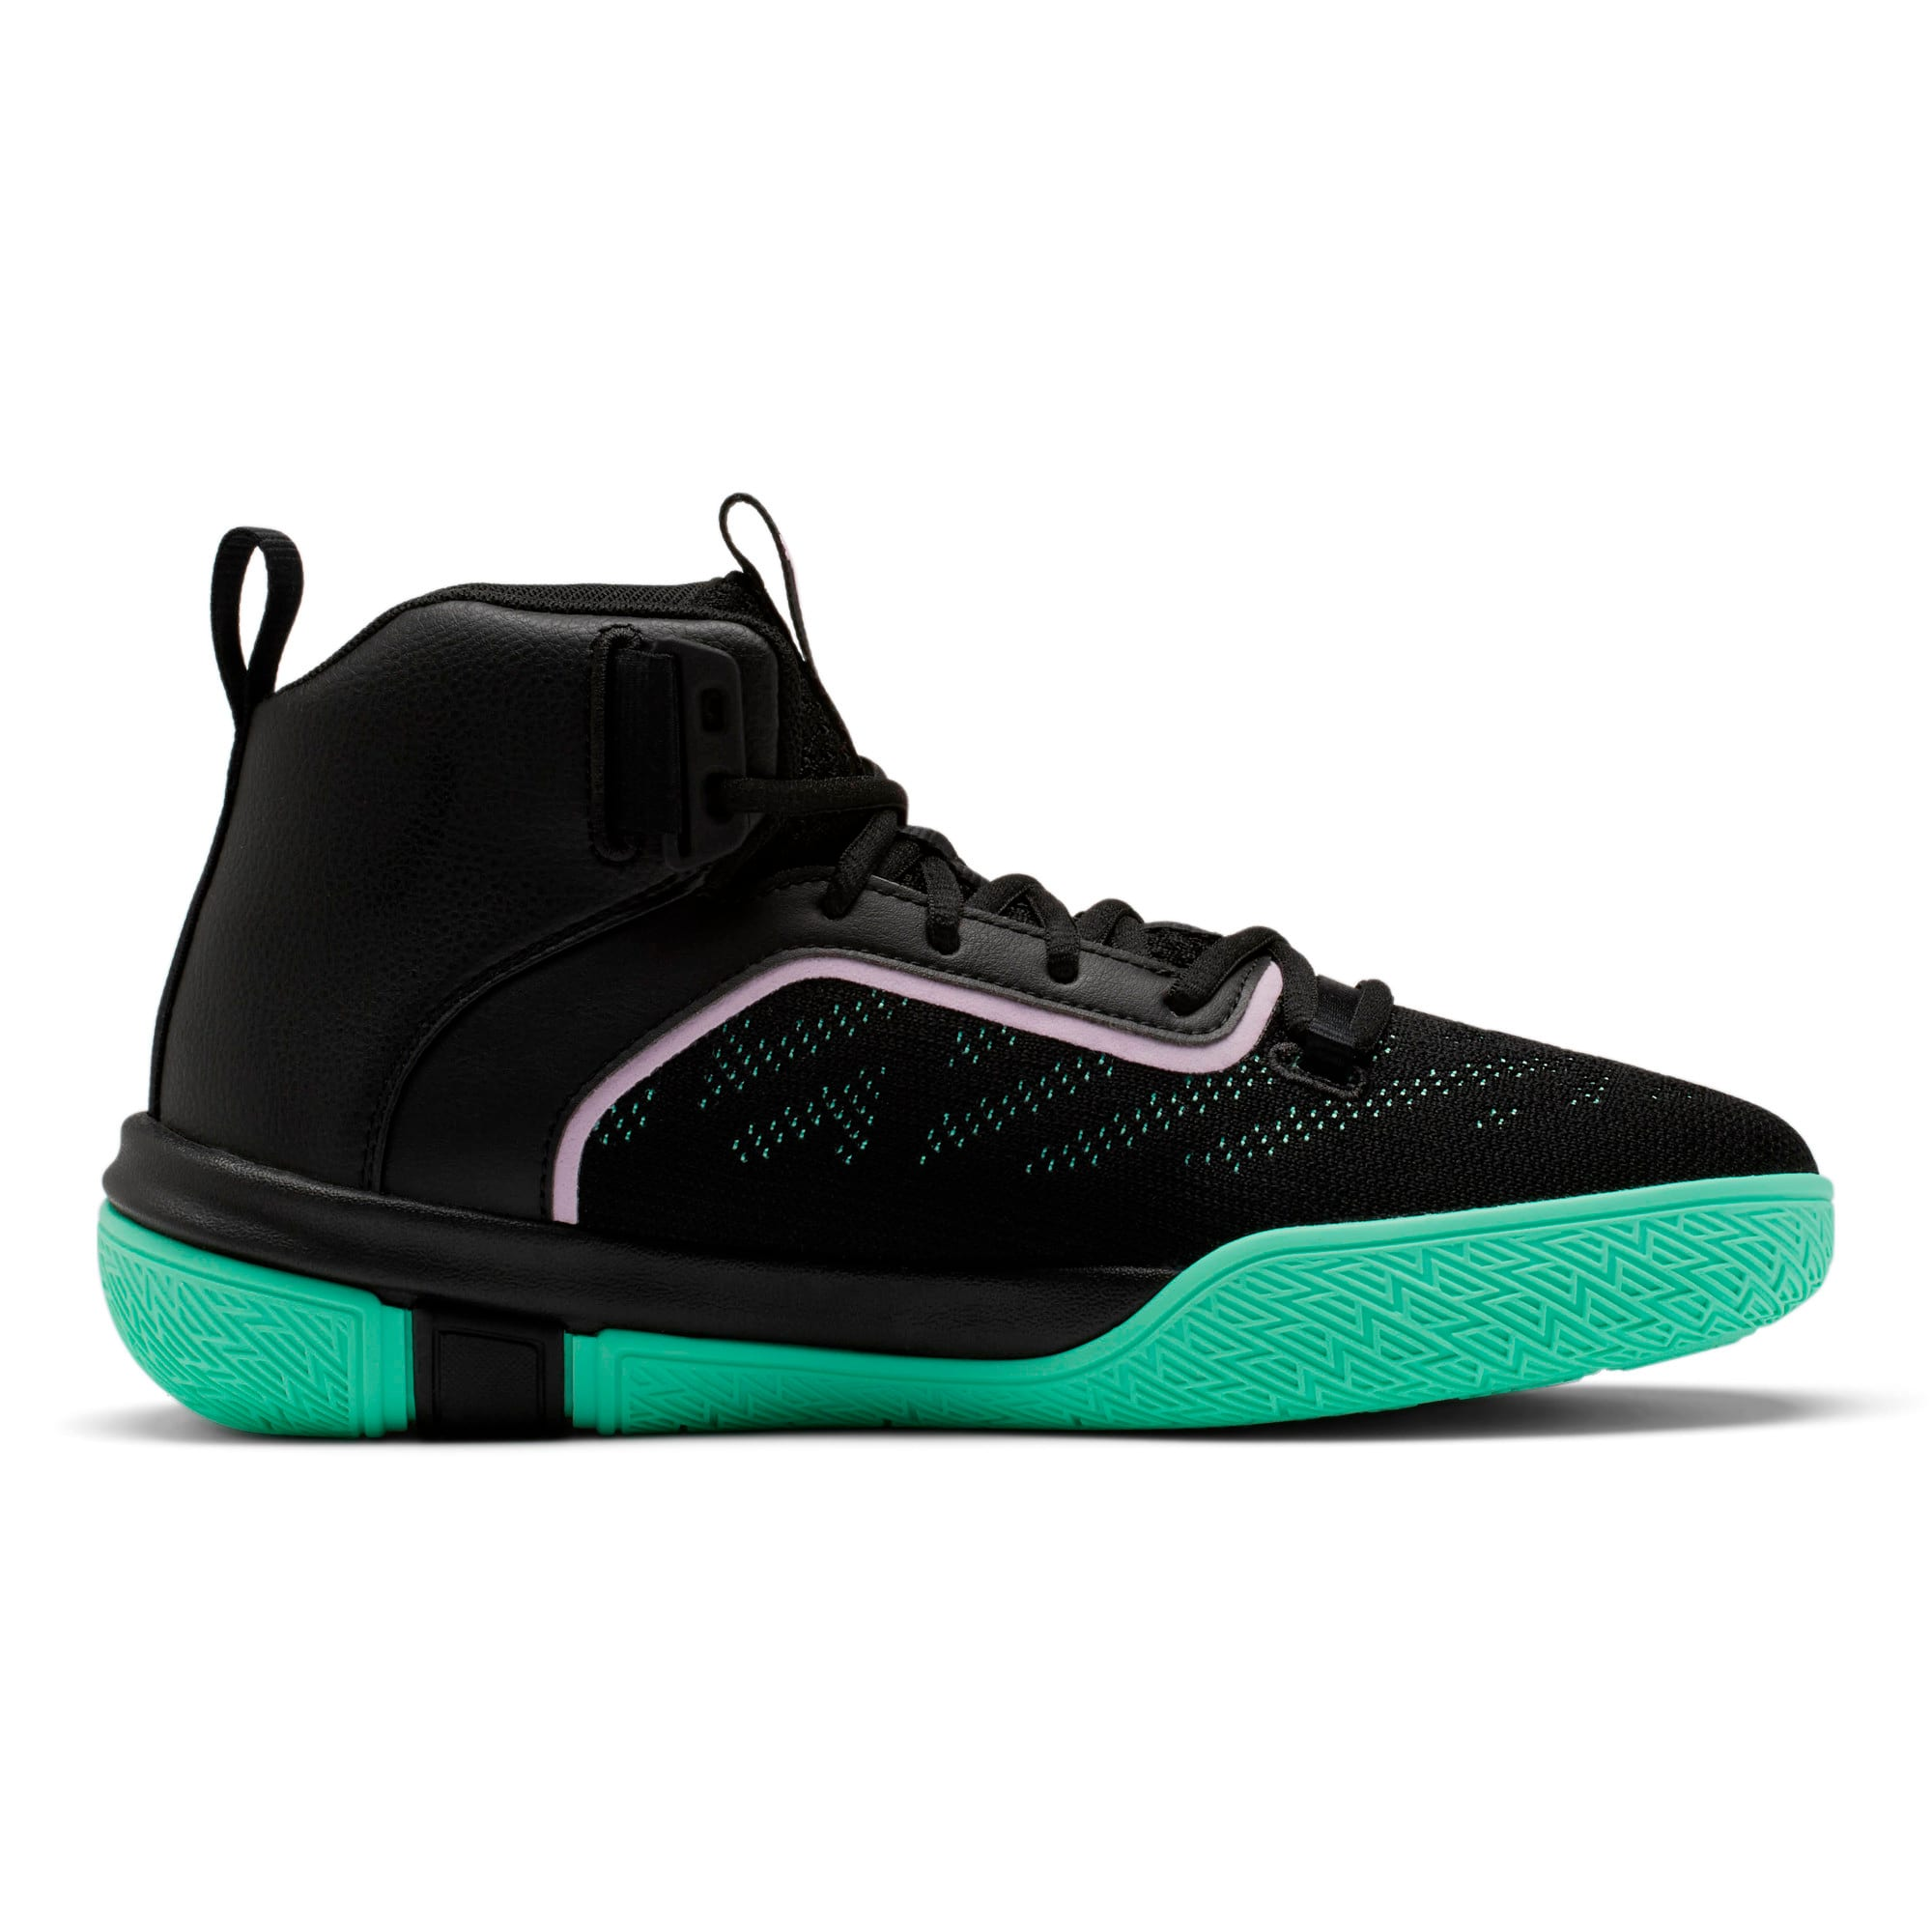 Thumbnail 5 of Legacy Dark Mode Basketball Shoes, Puma Black-Orchid Bloom, medium-IND